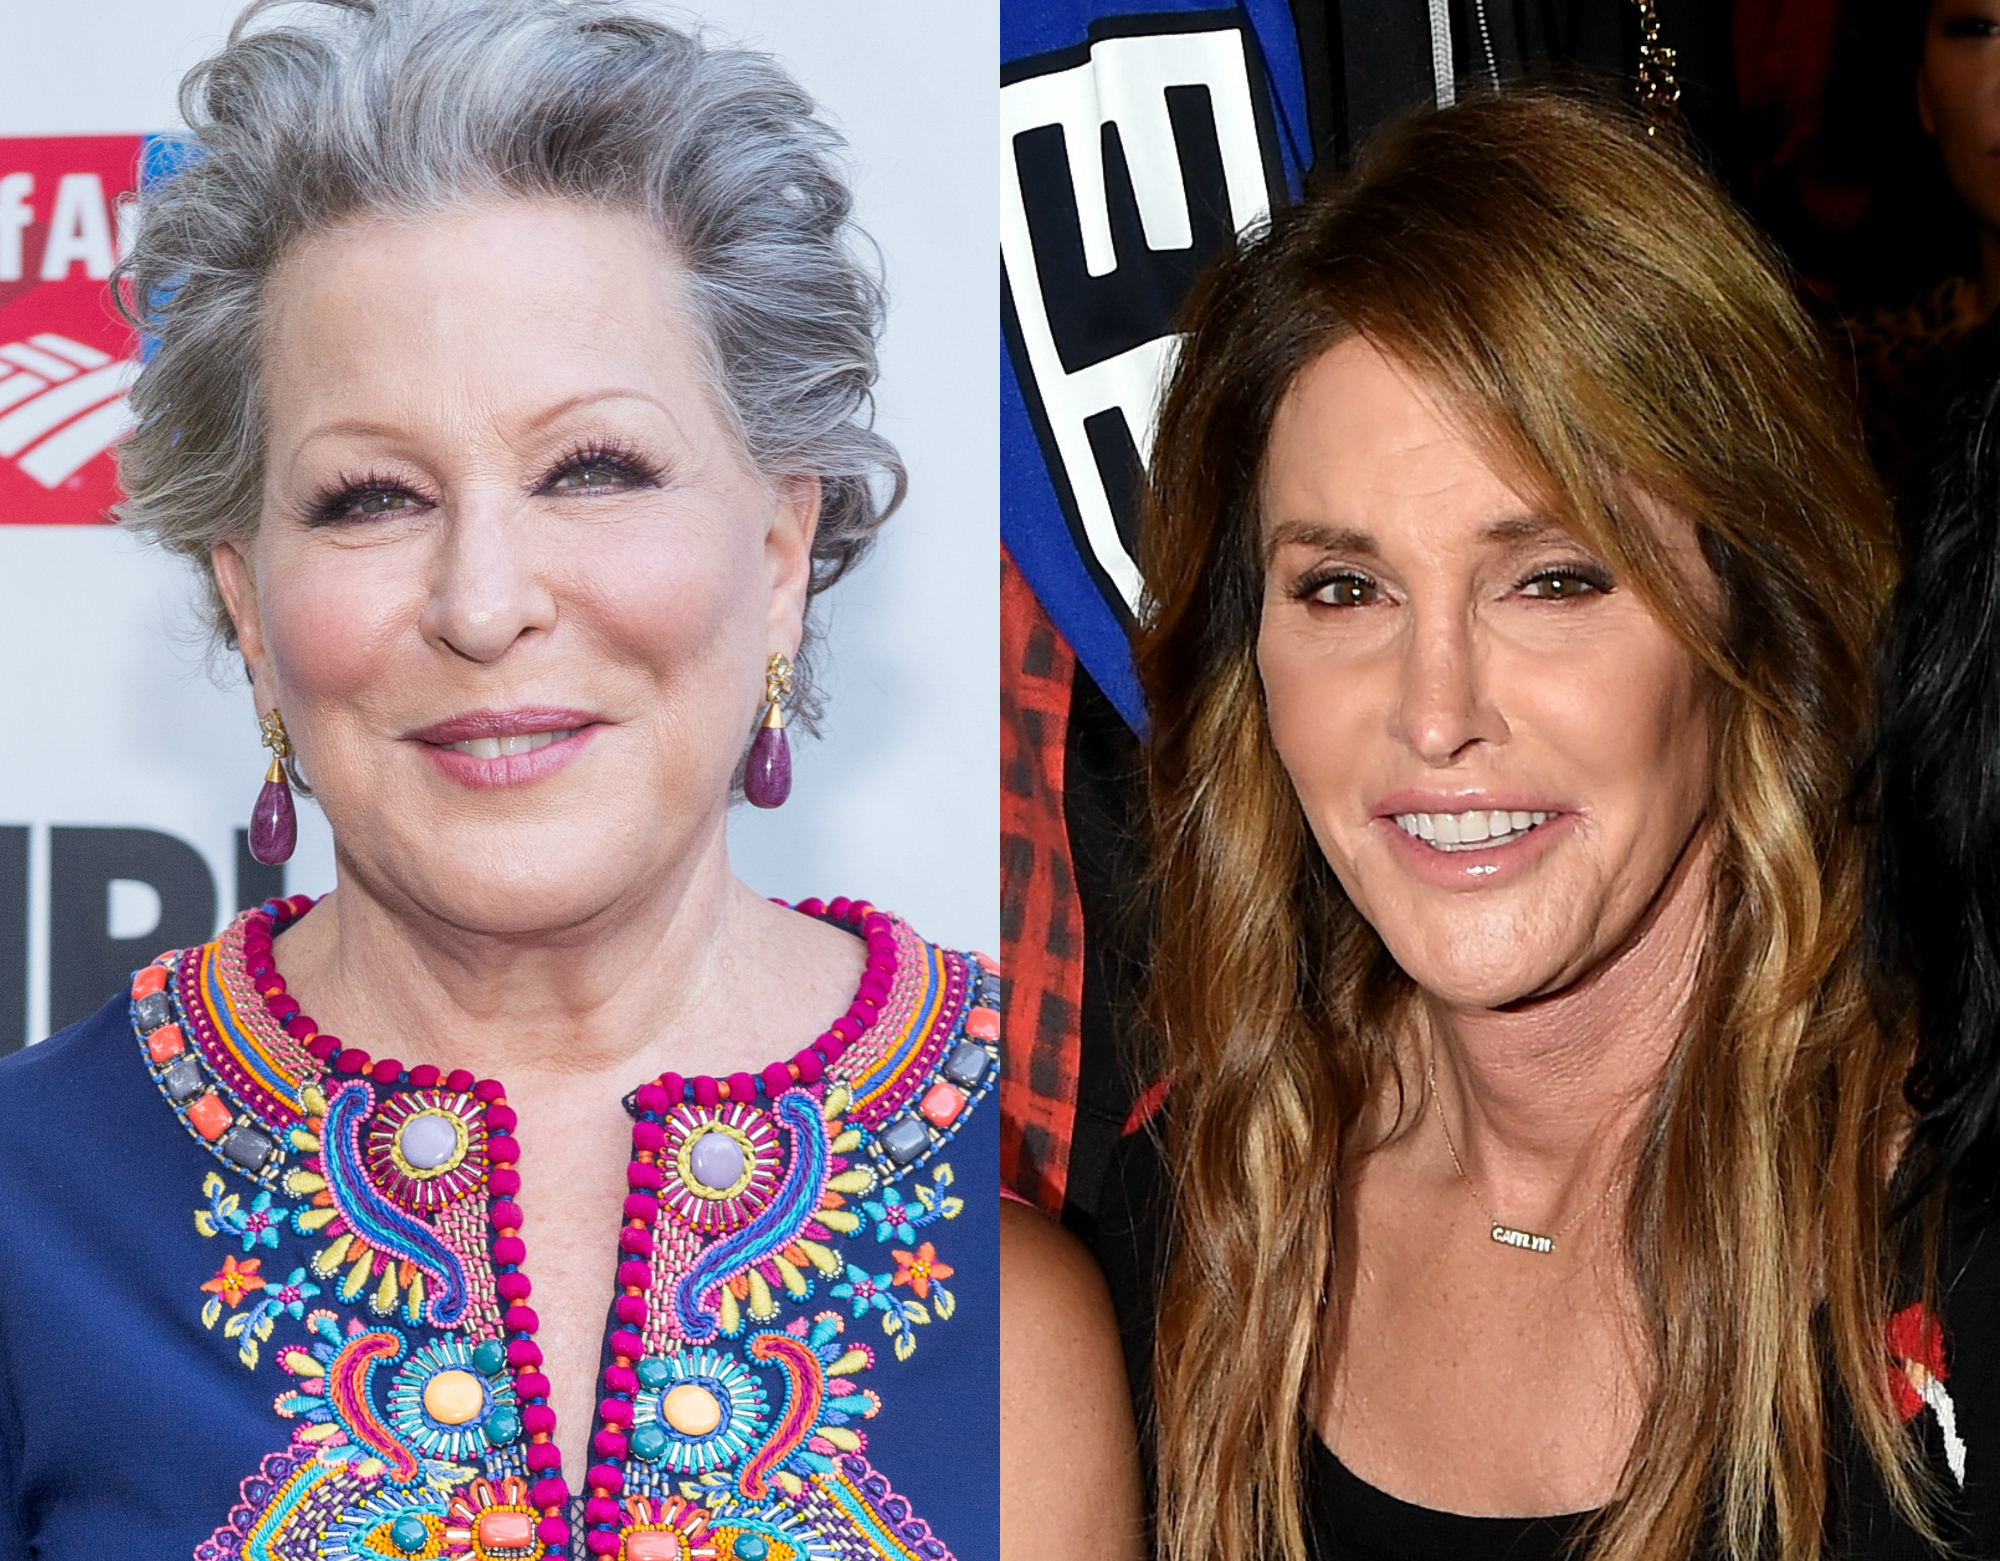 Bette Midler apologized after seriously transphobic tweet about Caitlyn Jenner